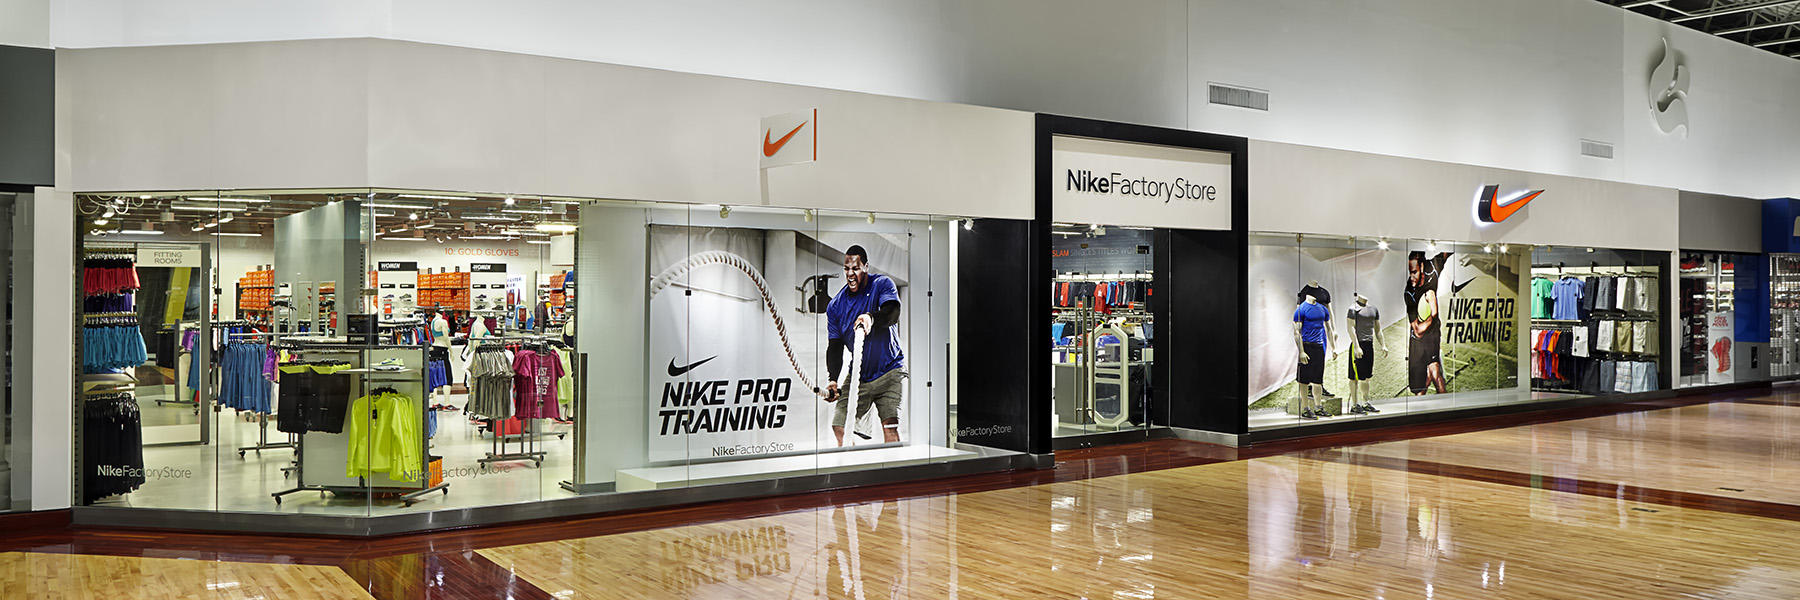 b74c8cd10ea9e Nike Factory Store - Lawrenceville. Lawrenceville